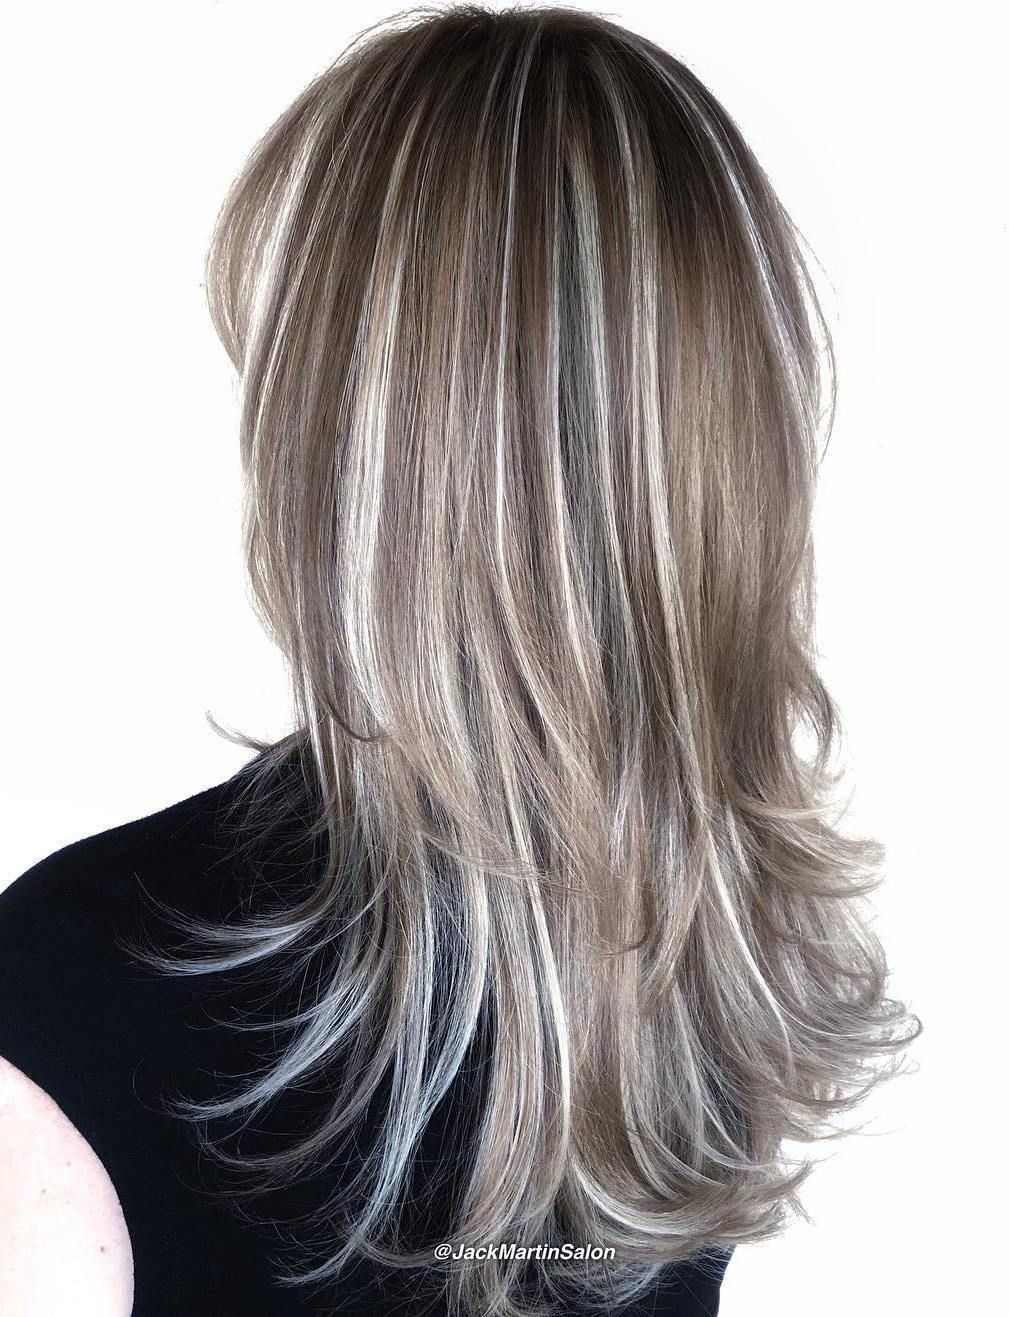 40 Hair Сolor Ideas with White and Platinum Blonde Hair